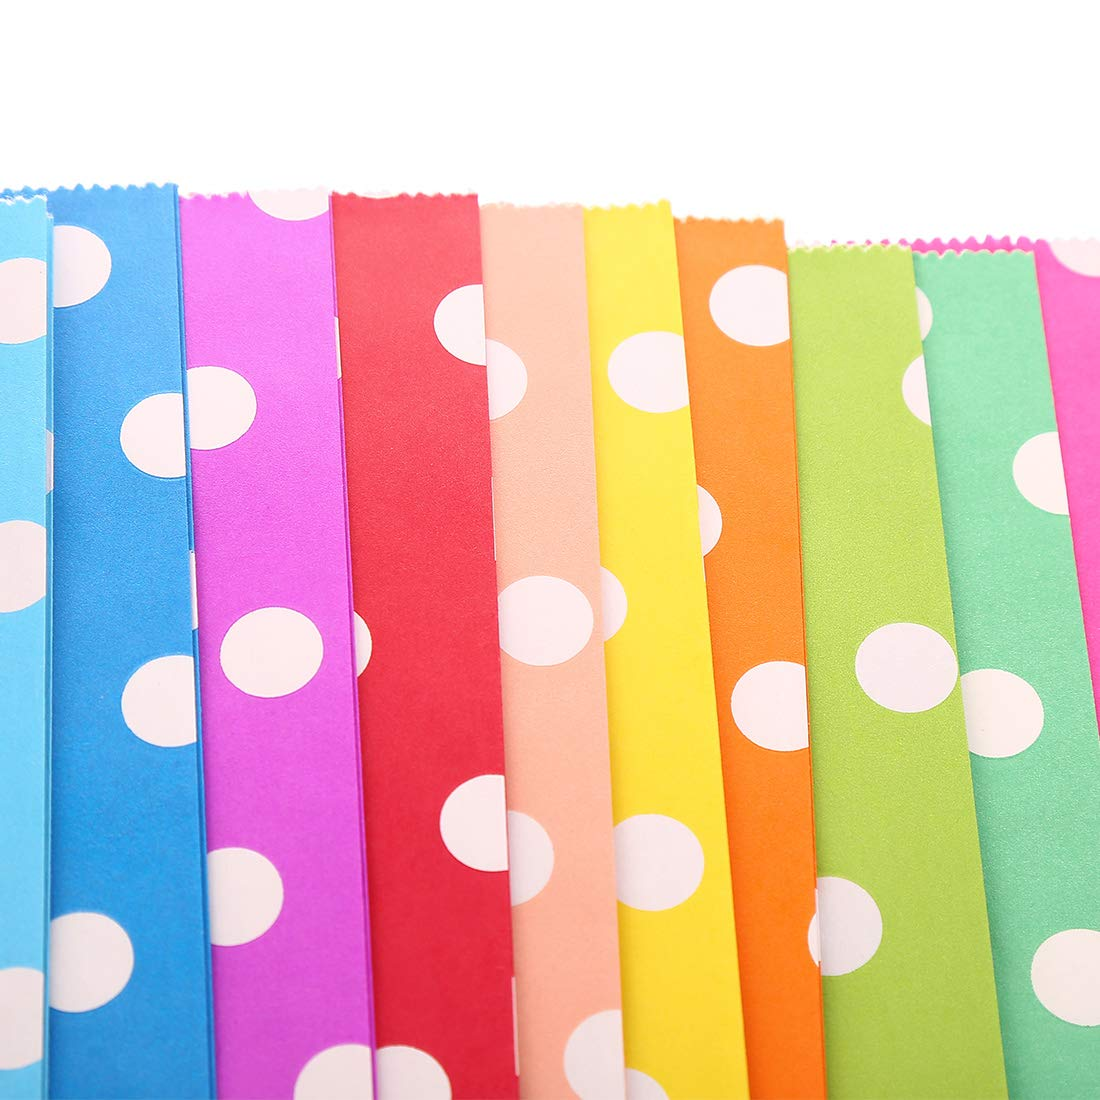 13 x 8x 24cm LOKIPA 24 Party Gift Bags Polka Dot Paper Party Bags with 36 Pieces Thank You Party Stickers for Birthday Party Supplies